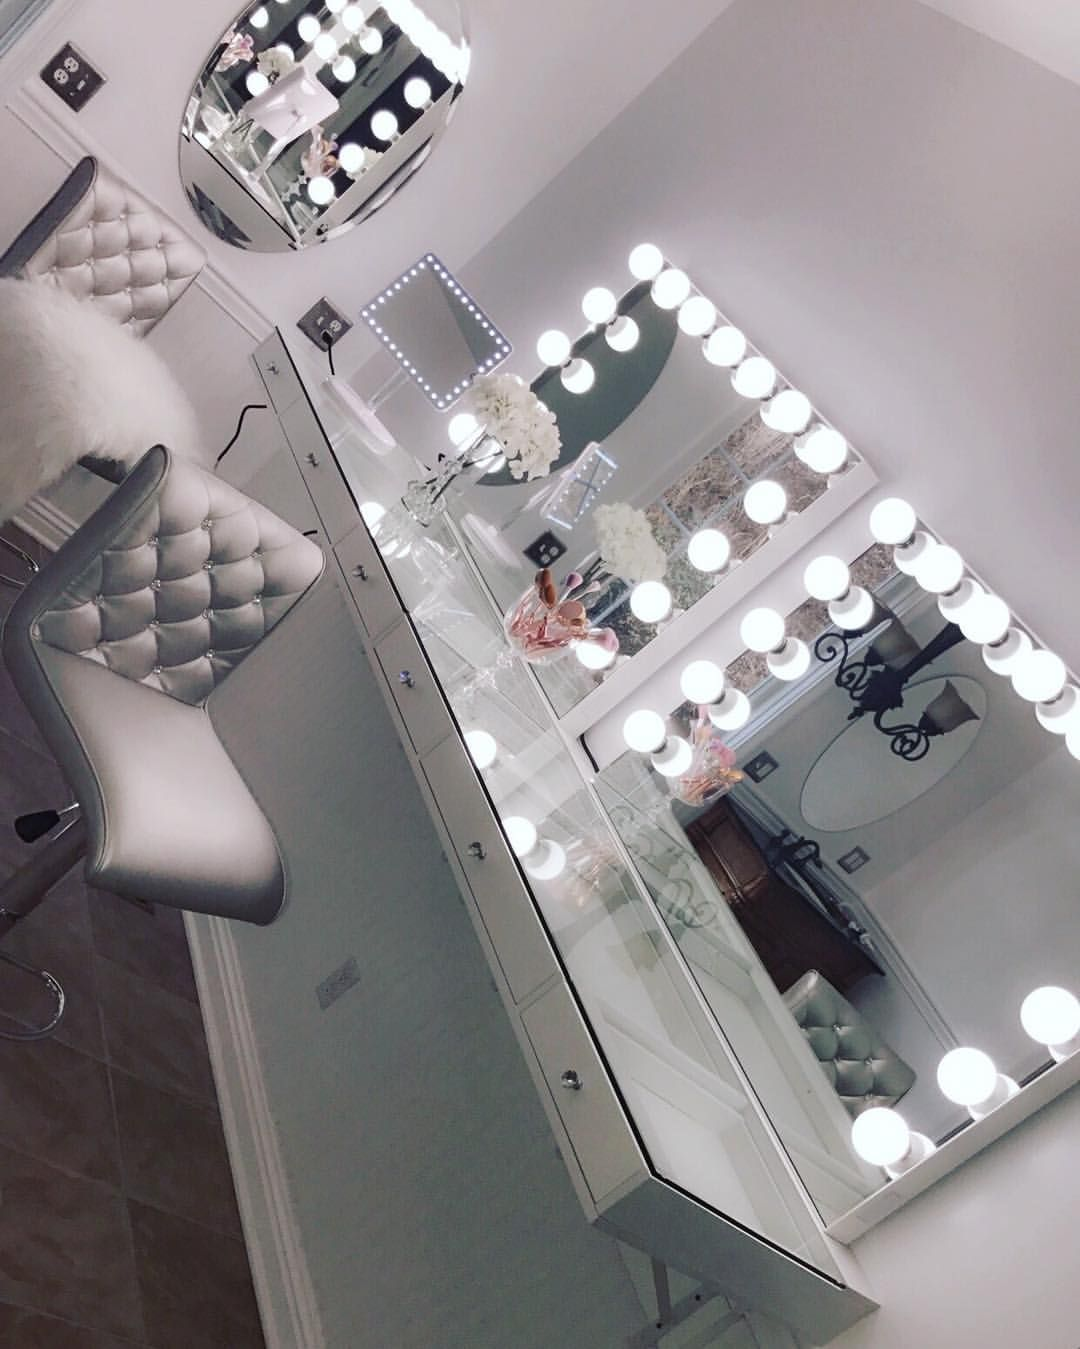 """Impressions Vanity Co. on Instagram: """"Have you ever seen something so magnificent ✨ ⠀ 📷: @peytonnn_bae featuring our #SlayStation and #impressionsvanityglowpro"""""""